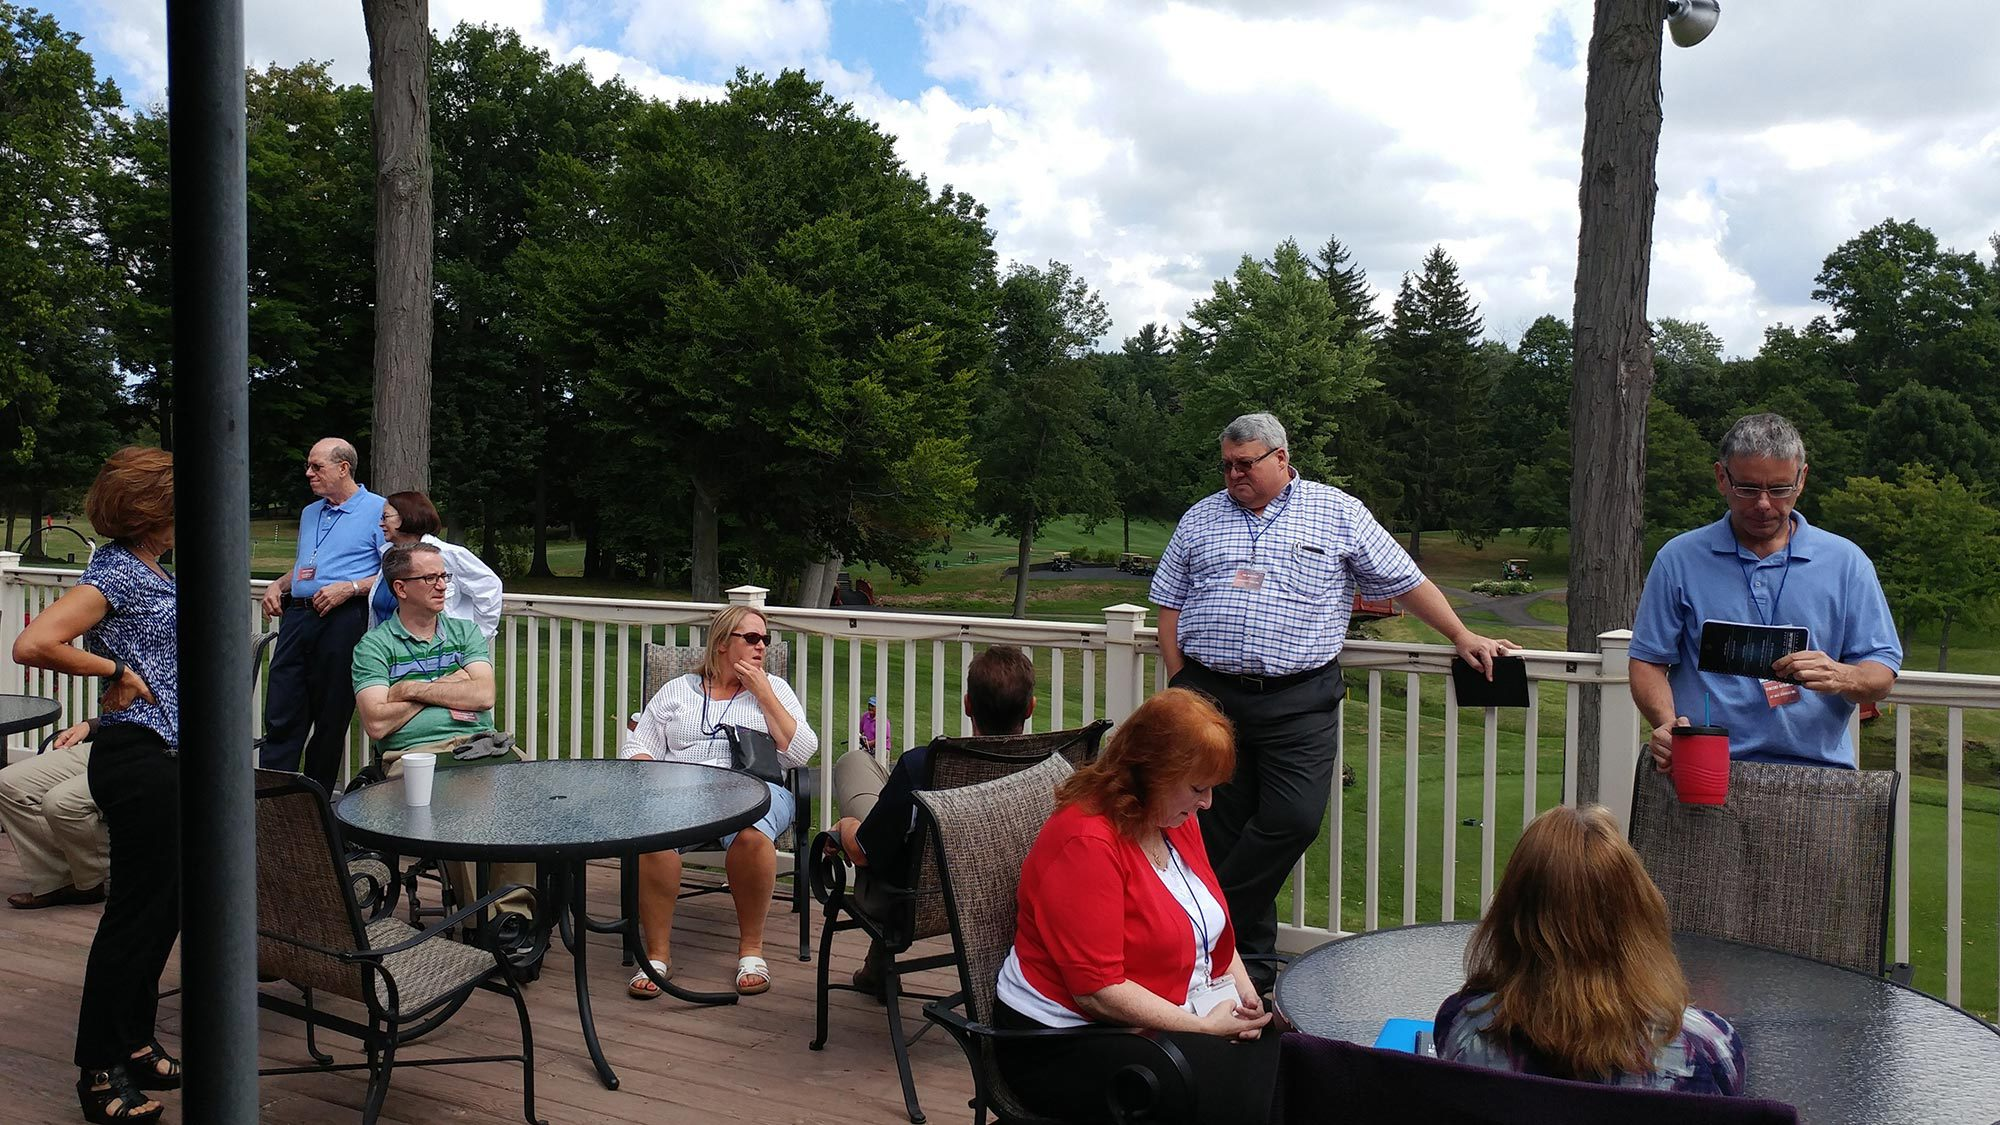 Attendees enjoy the perfect views at Brook-Lea Country Club during a session break.